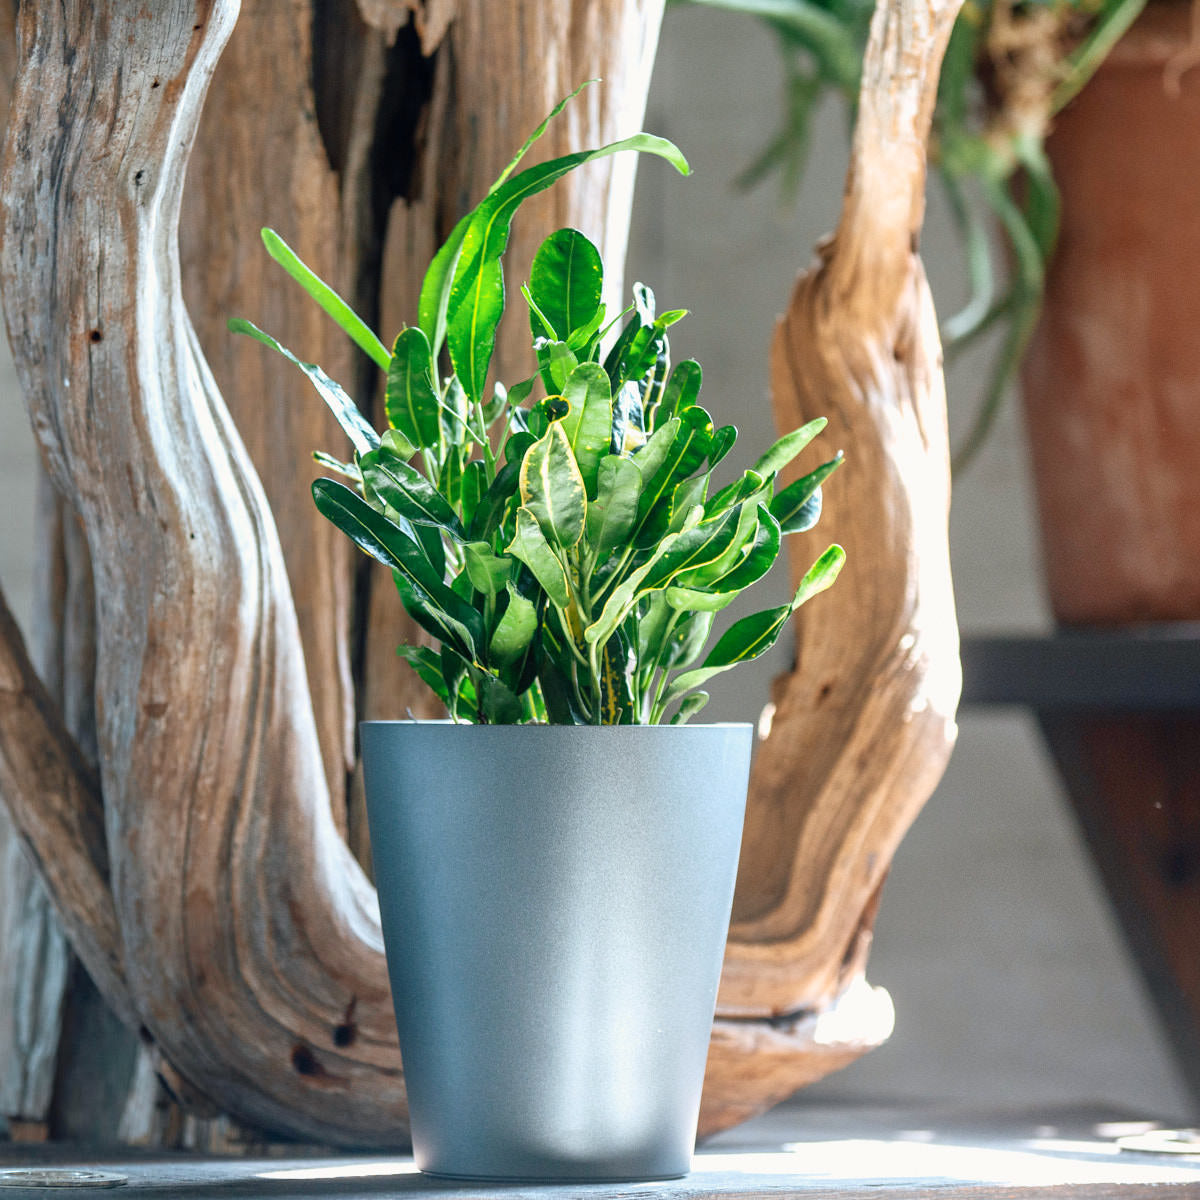 Banana Croton plant potted in Lechuza Lechuza Deltini charcoal metallic planter - Shop Online - My City Plants